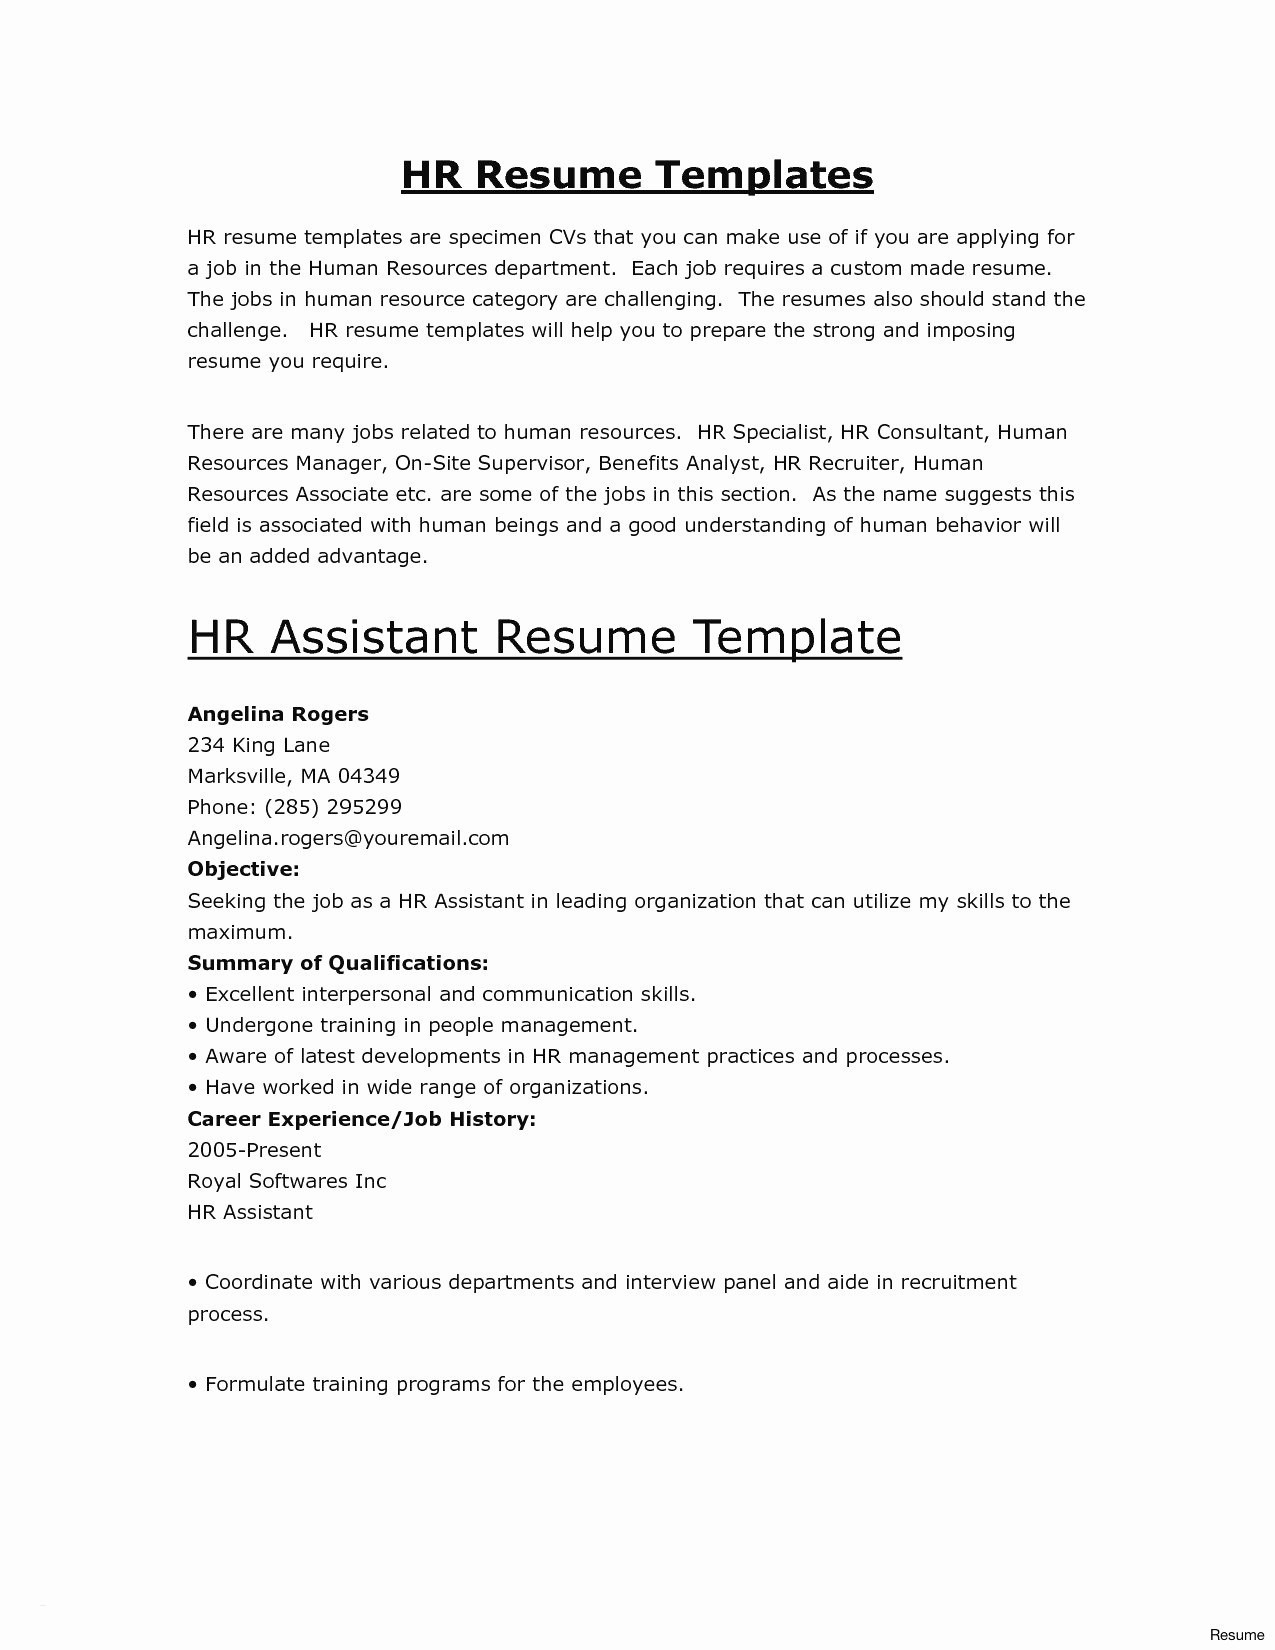 Looking for Resumes - Resume Job Description Best Self Employed Resume New Luxury